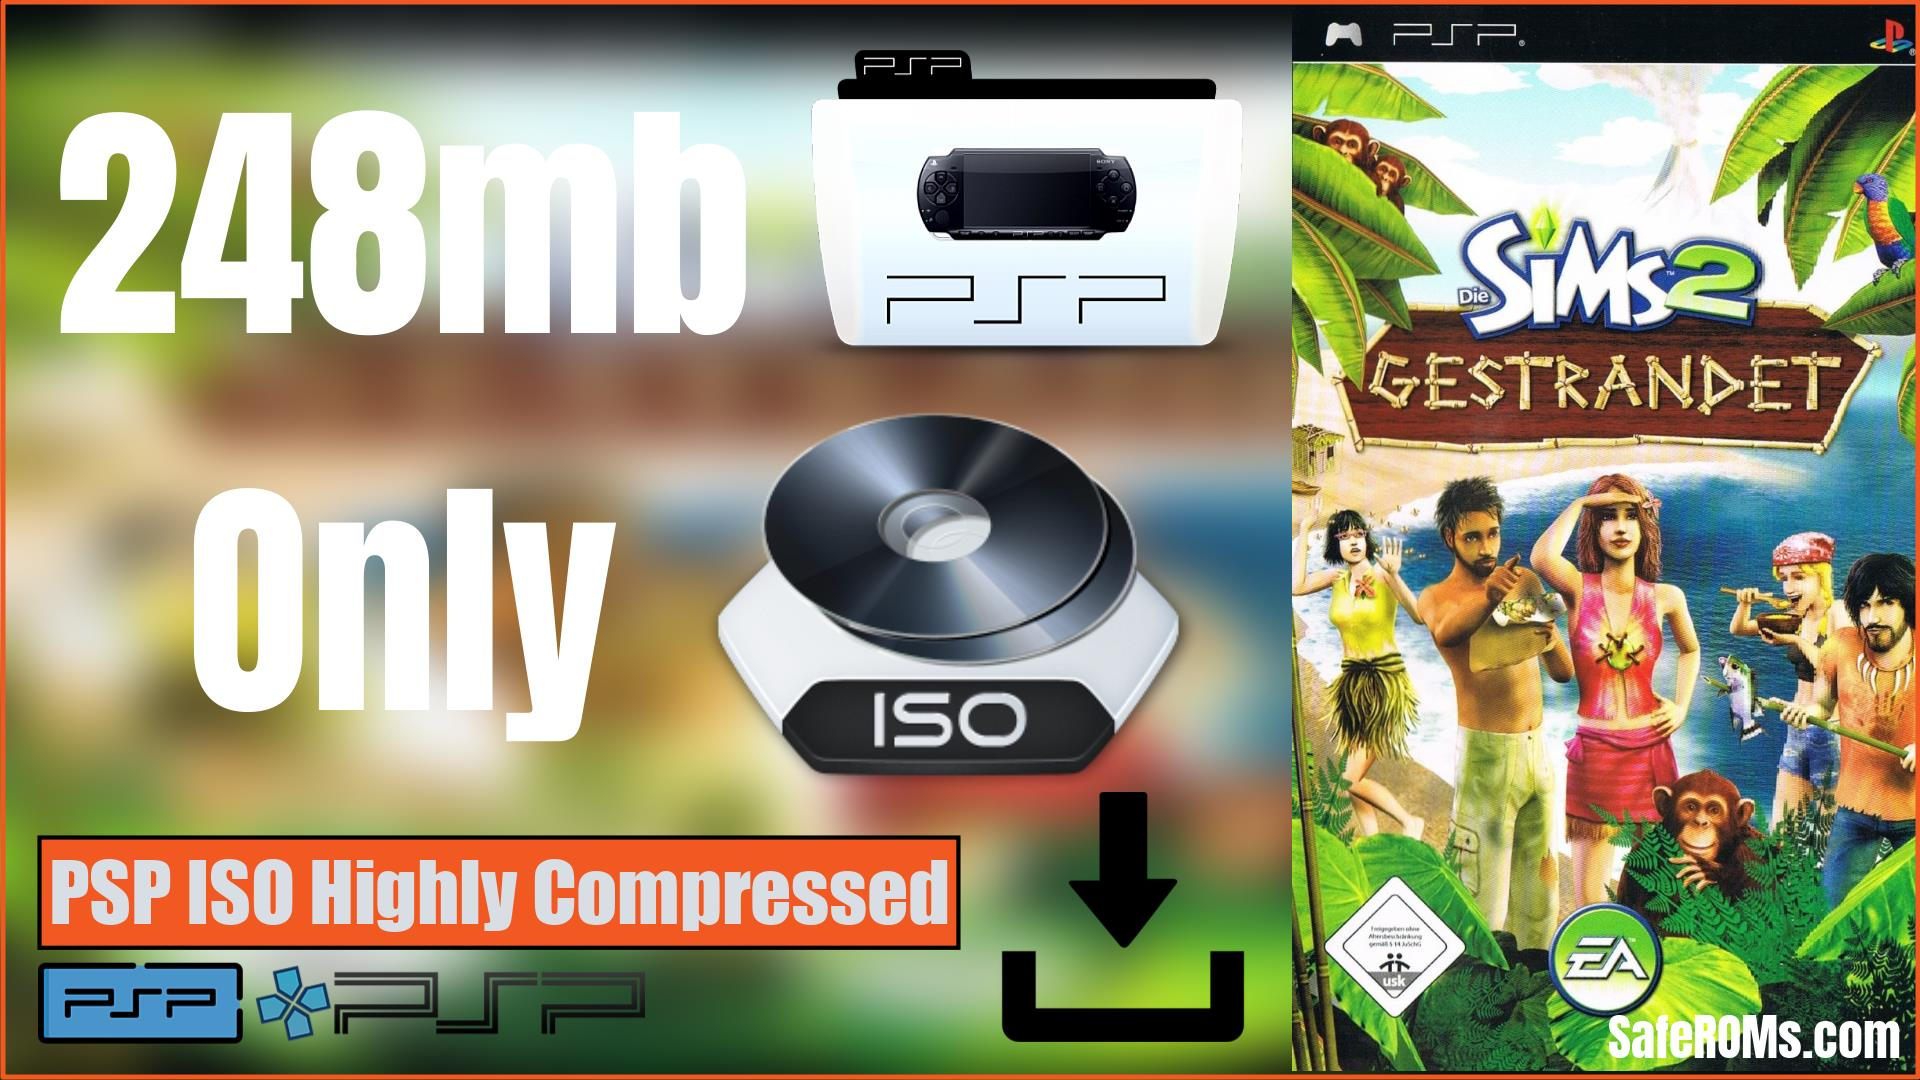 The Sims 2 Castaway PSP ISO Highly Compressed Download